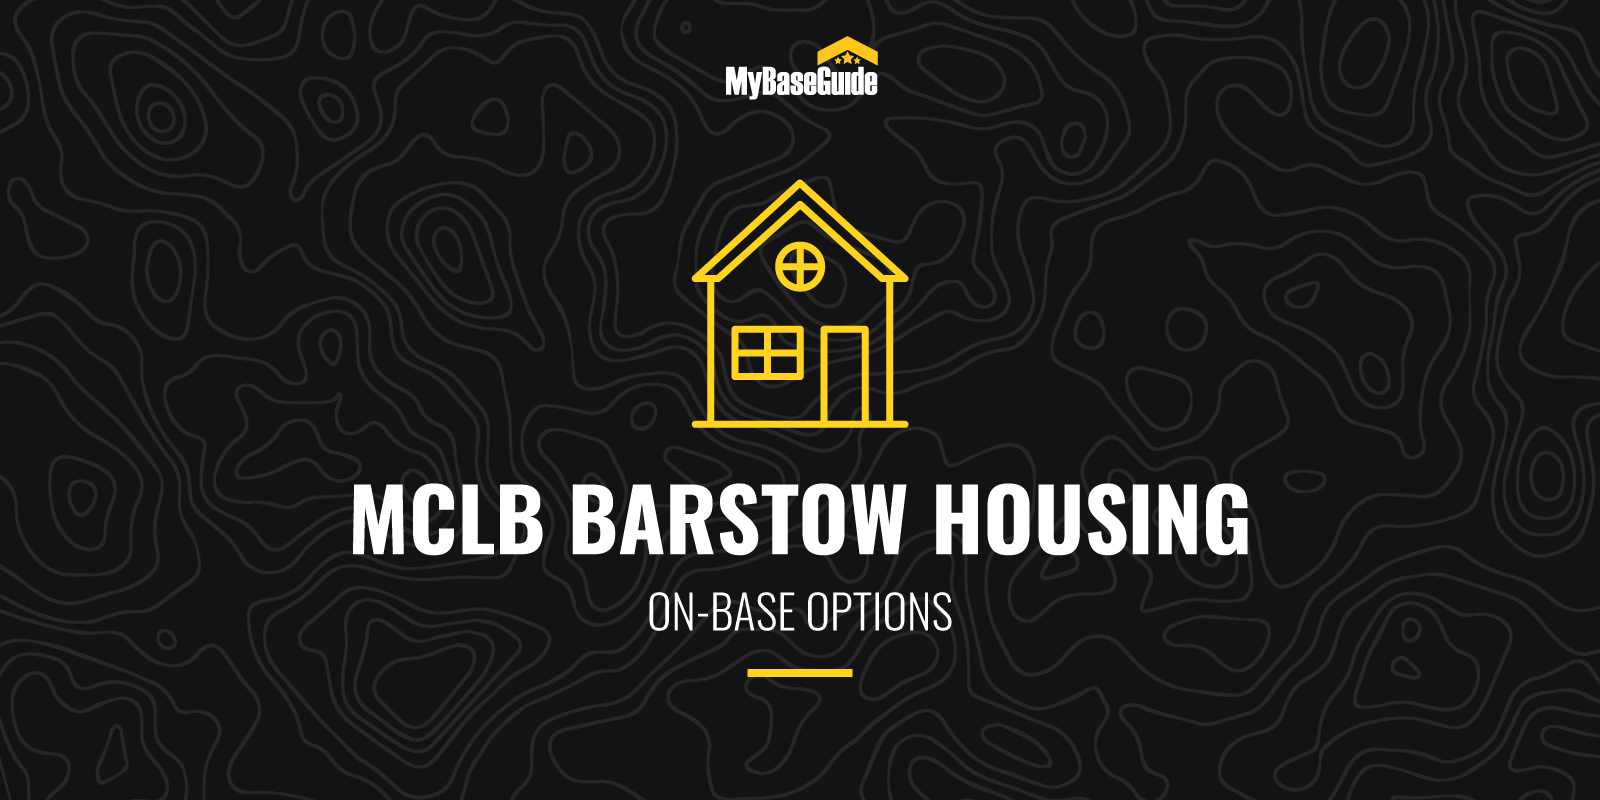 MCLB Barstow Housing: On-Base Options